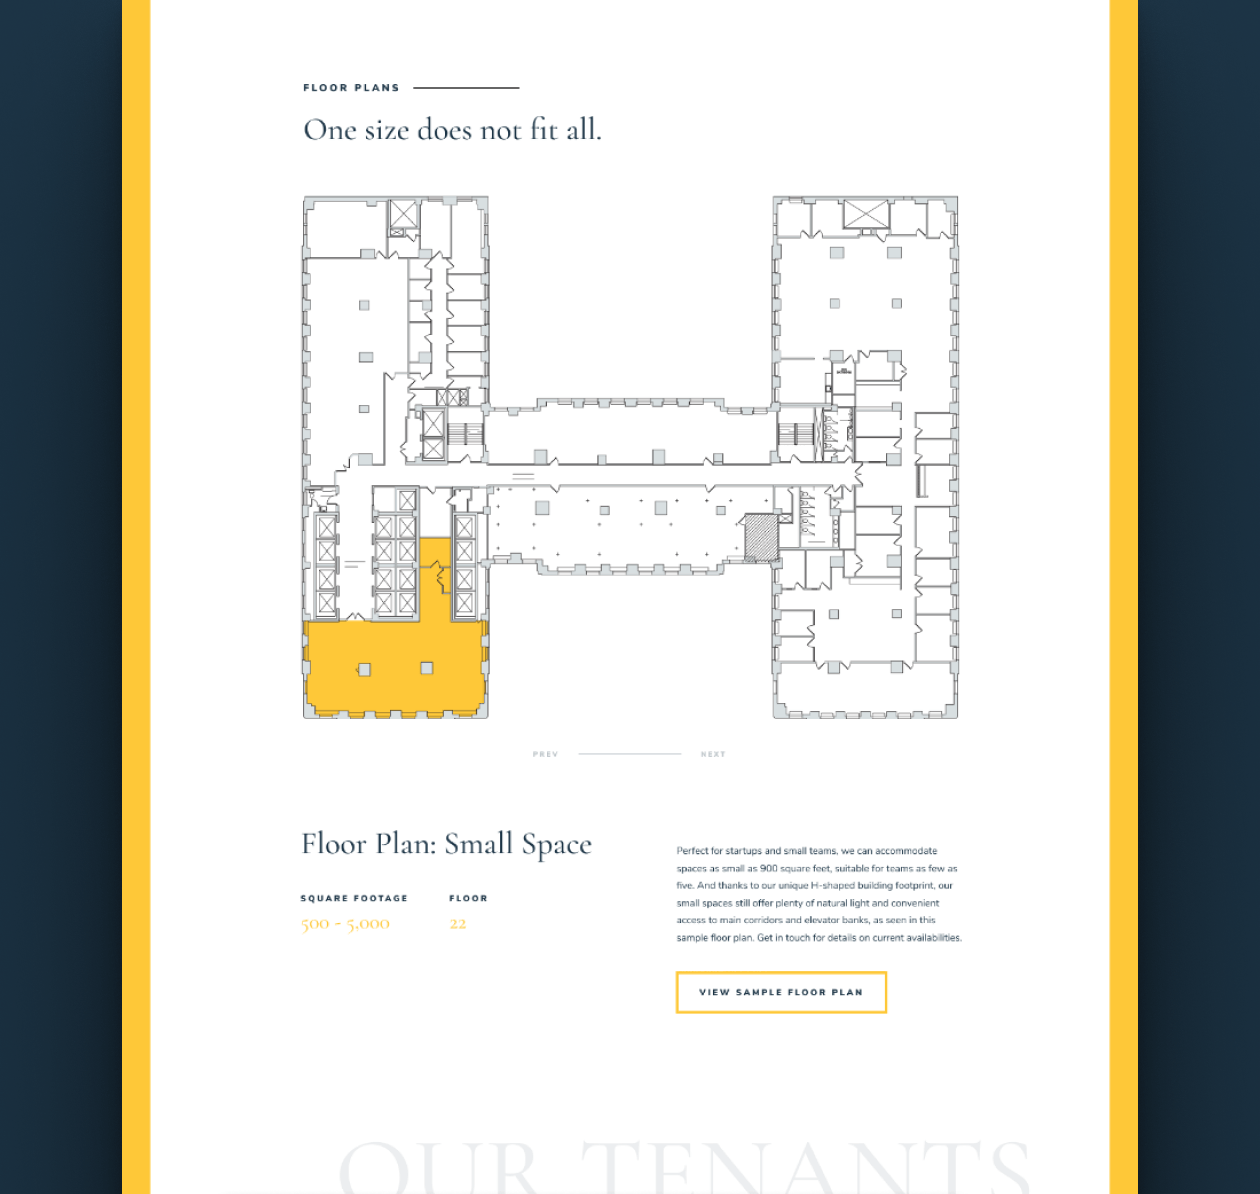 123 S Broad - Floor plans. One size does not fit all.